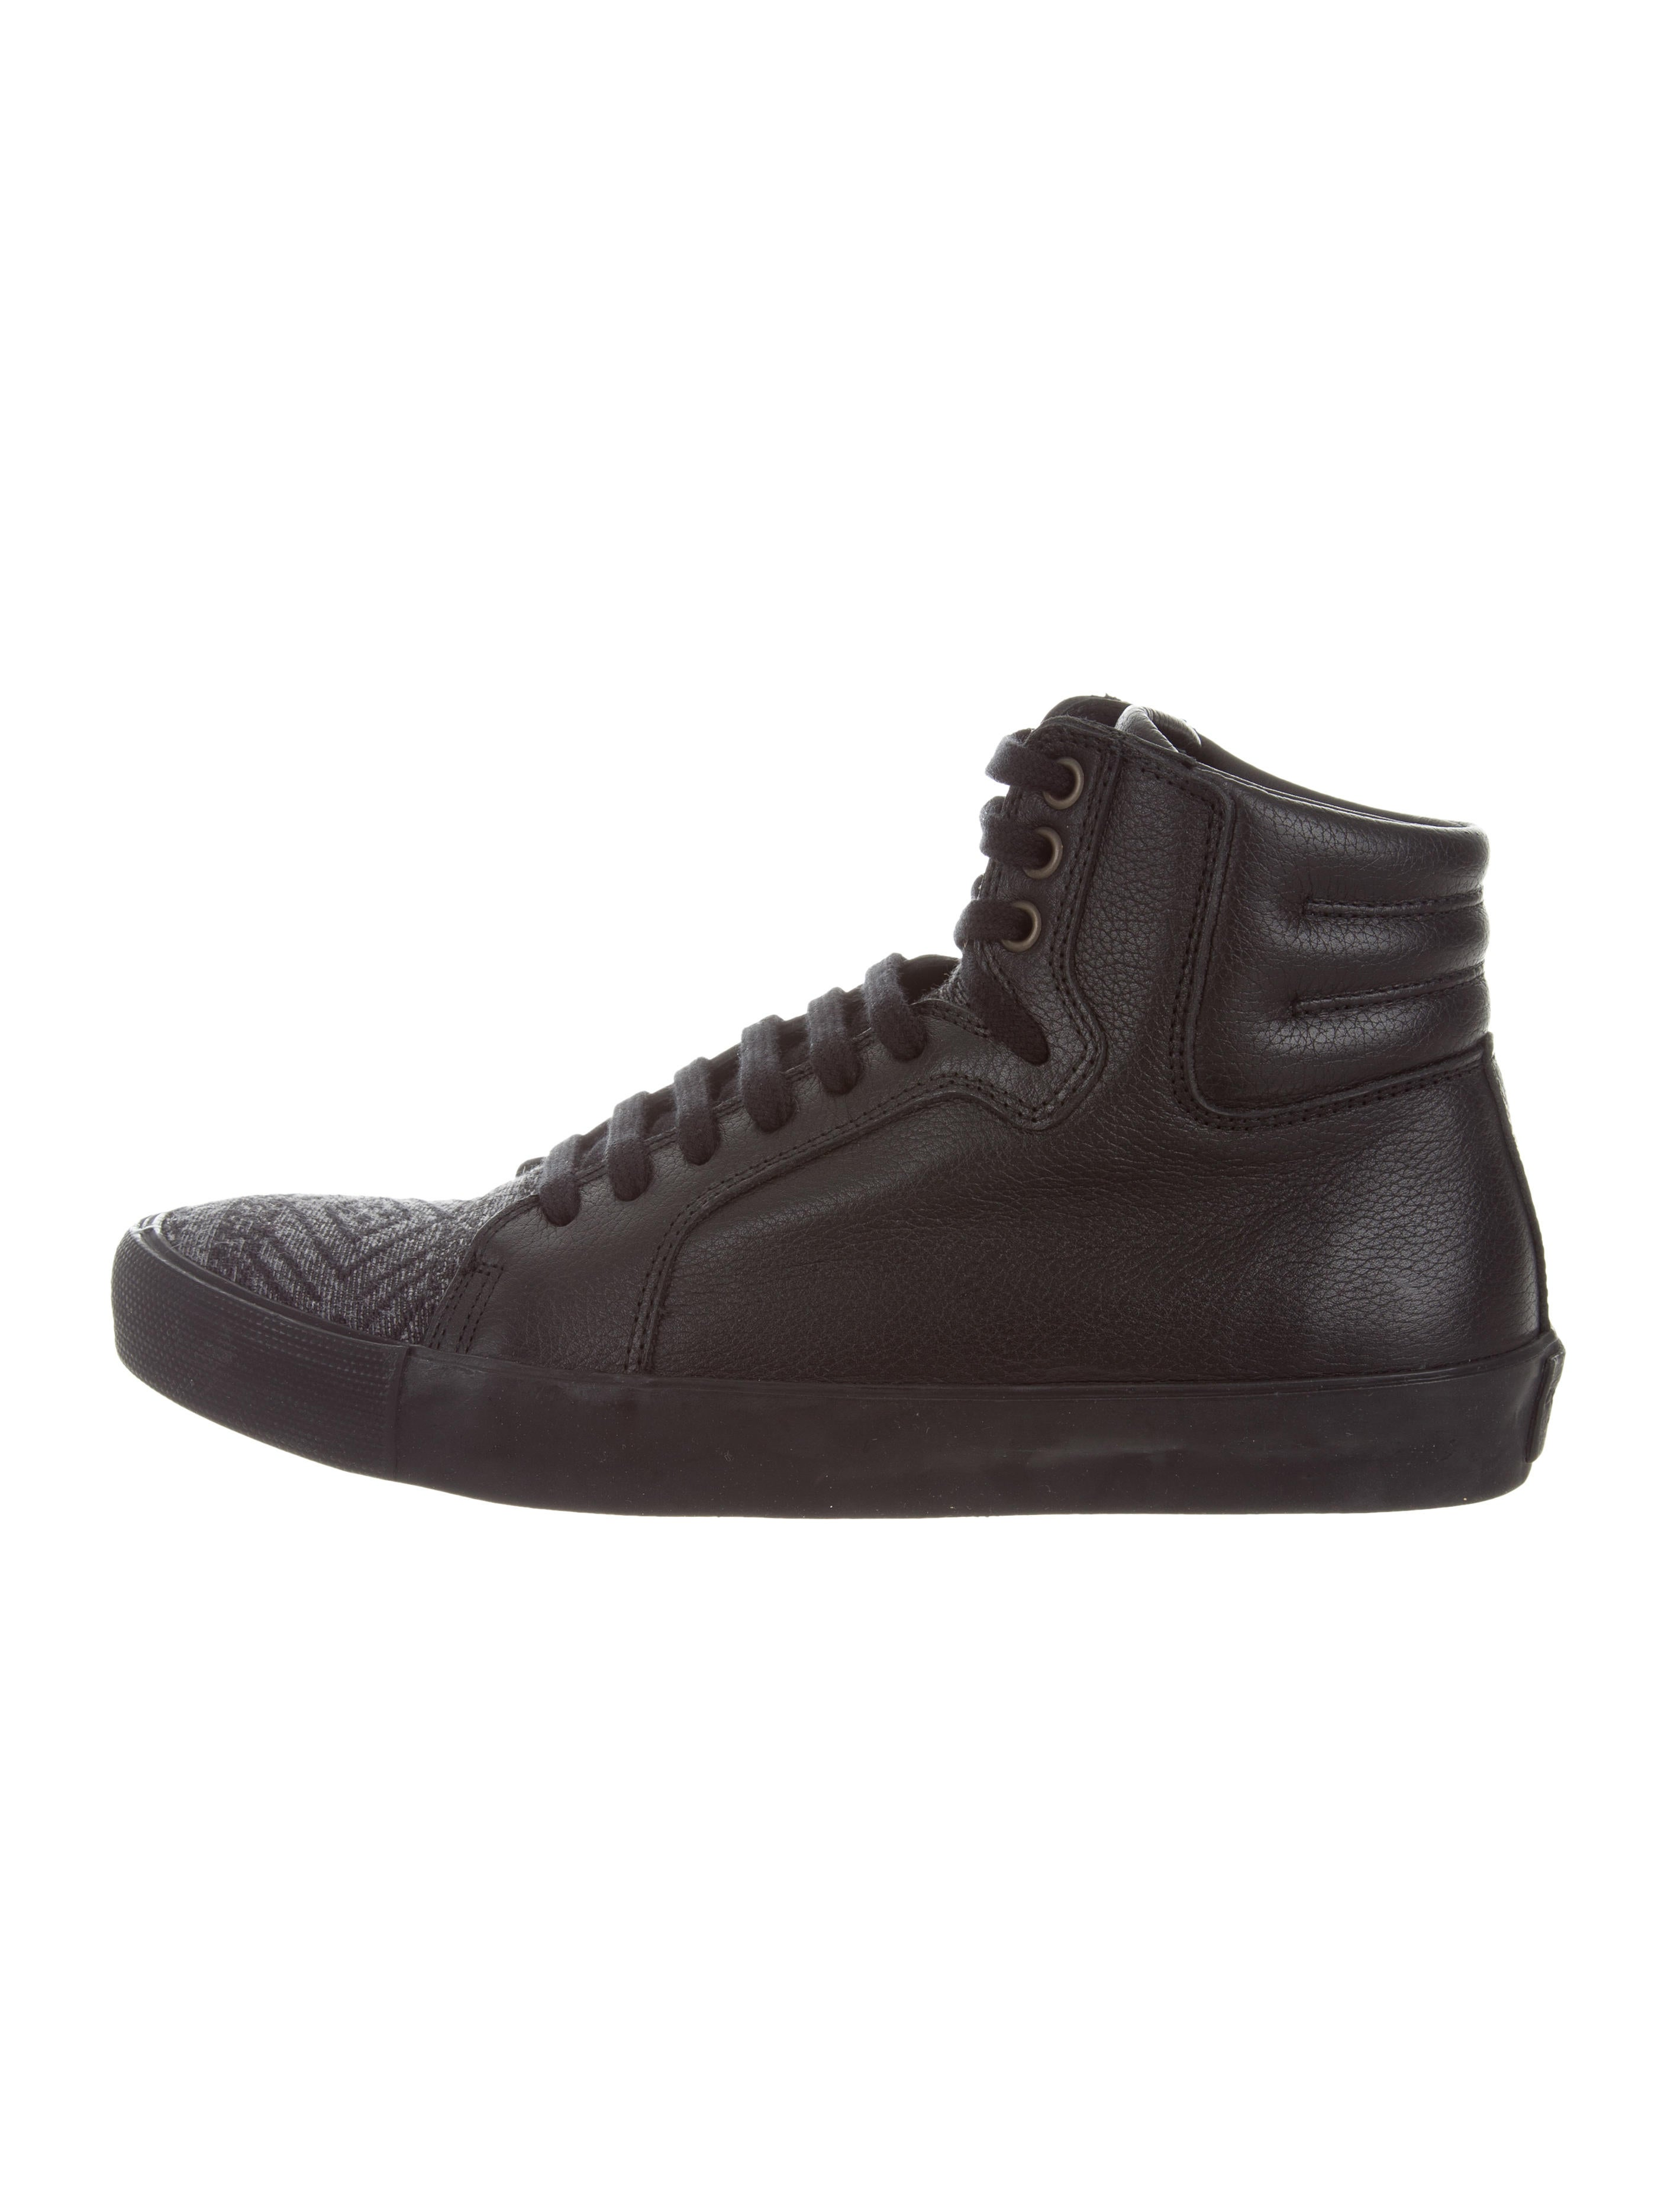 Cobra Society Leather High-Top Sneakers w/ Tags outlet footaction sale original vzOLEkMQ